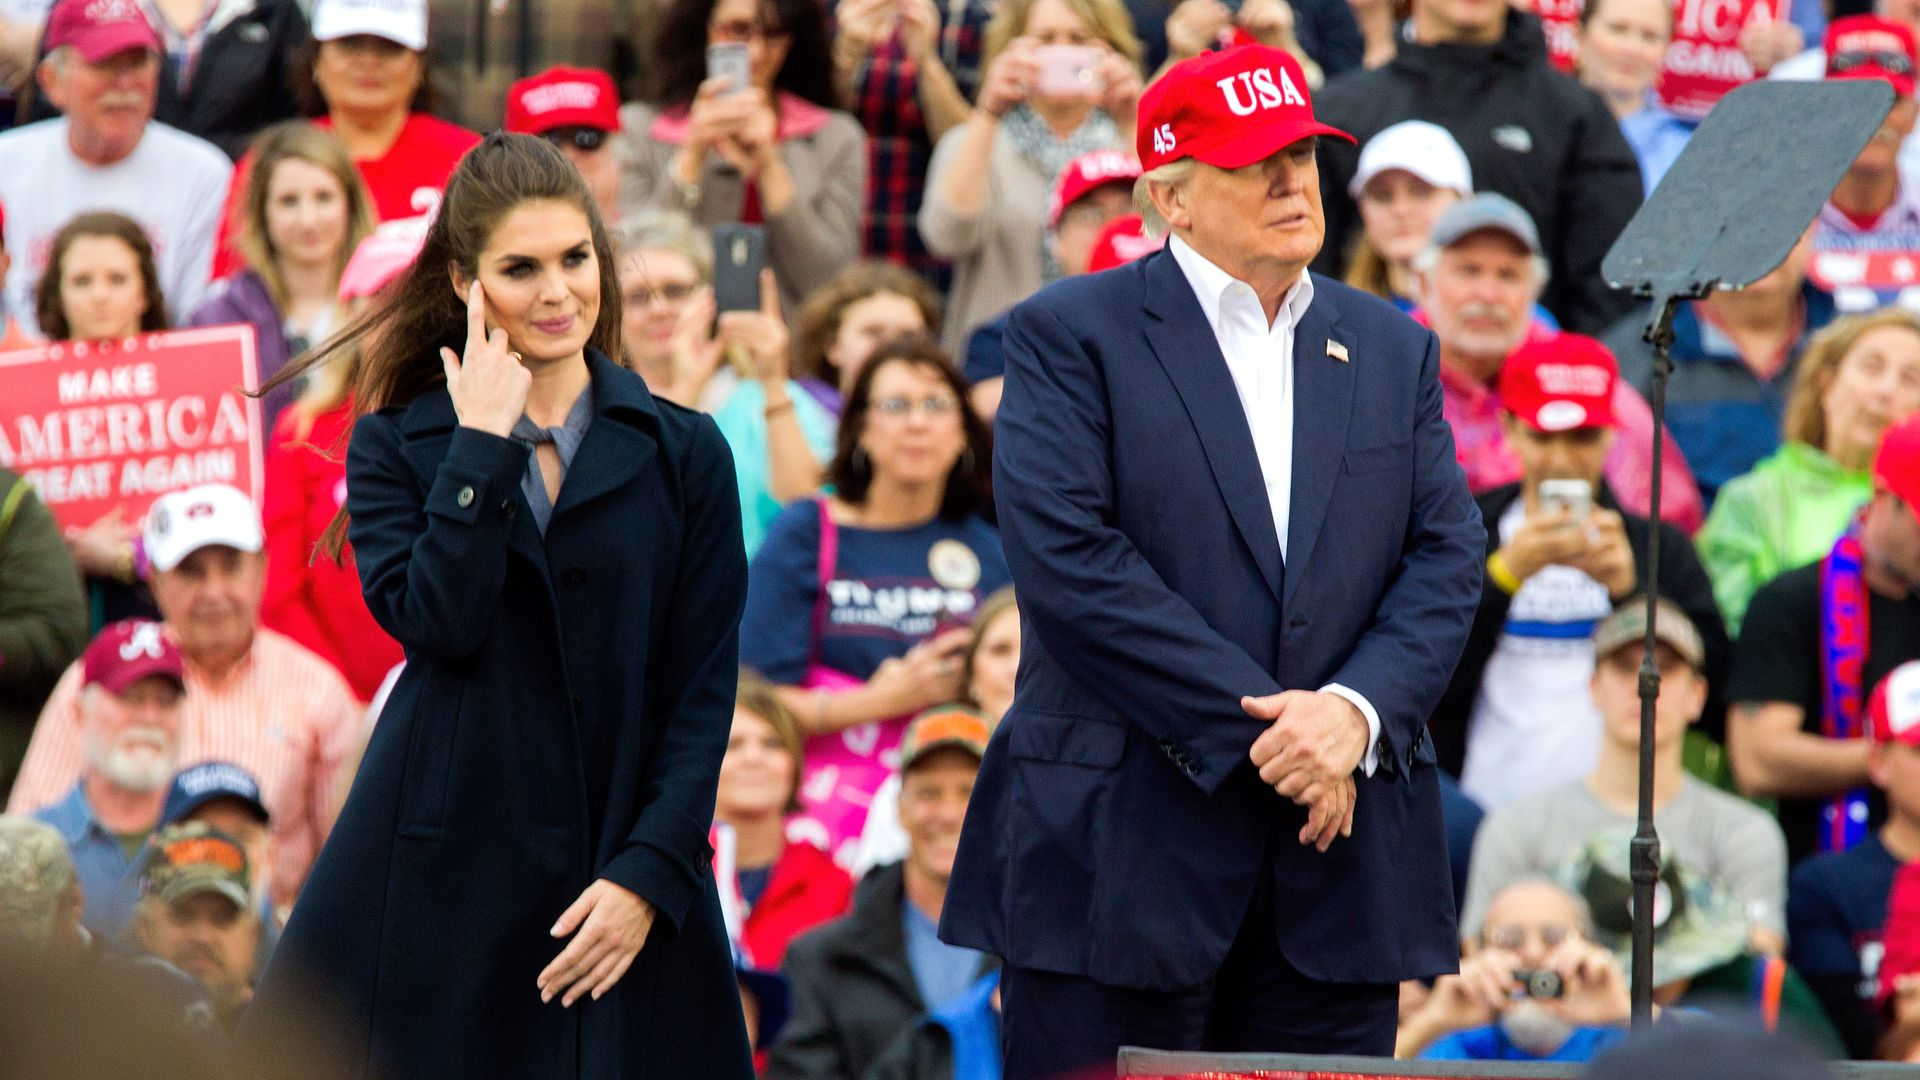 Hope Hicks with Trump at rally